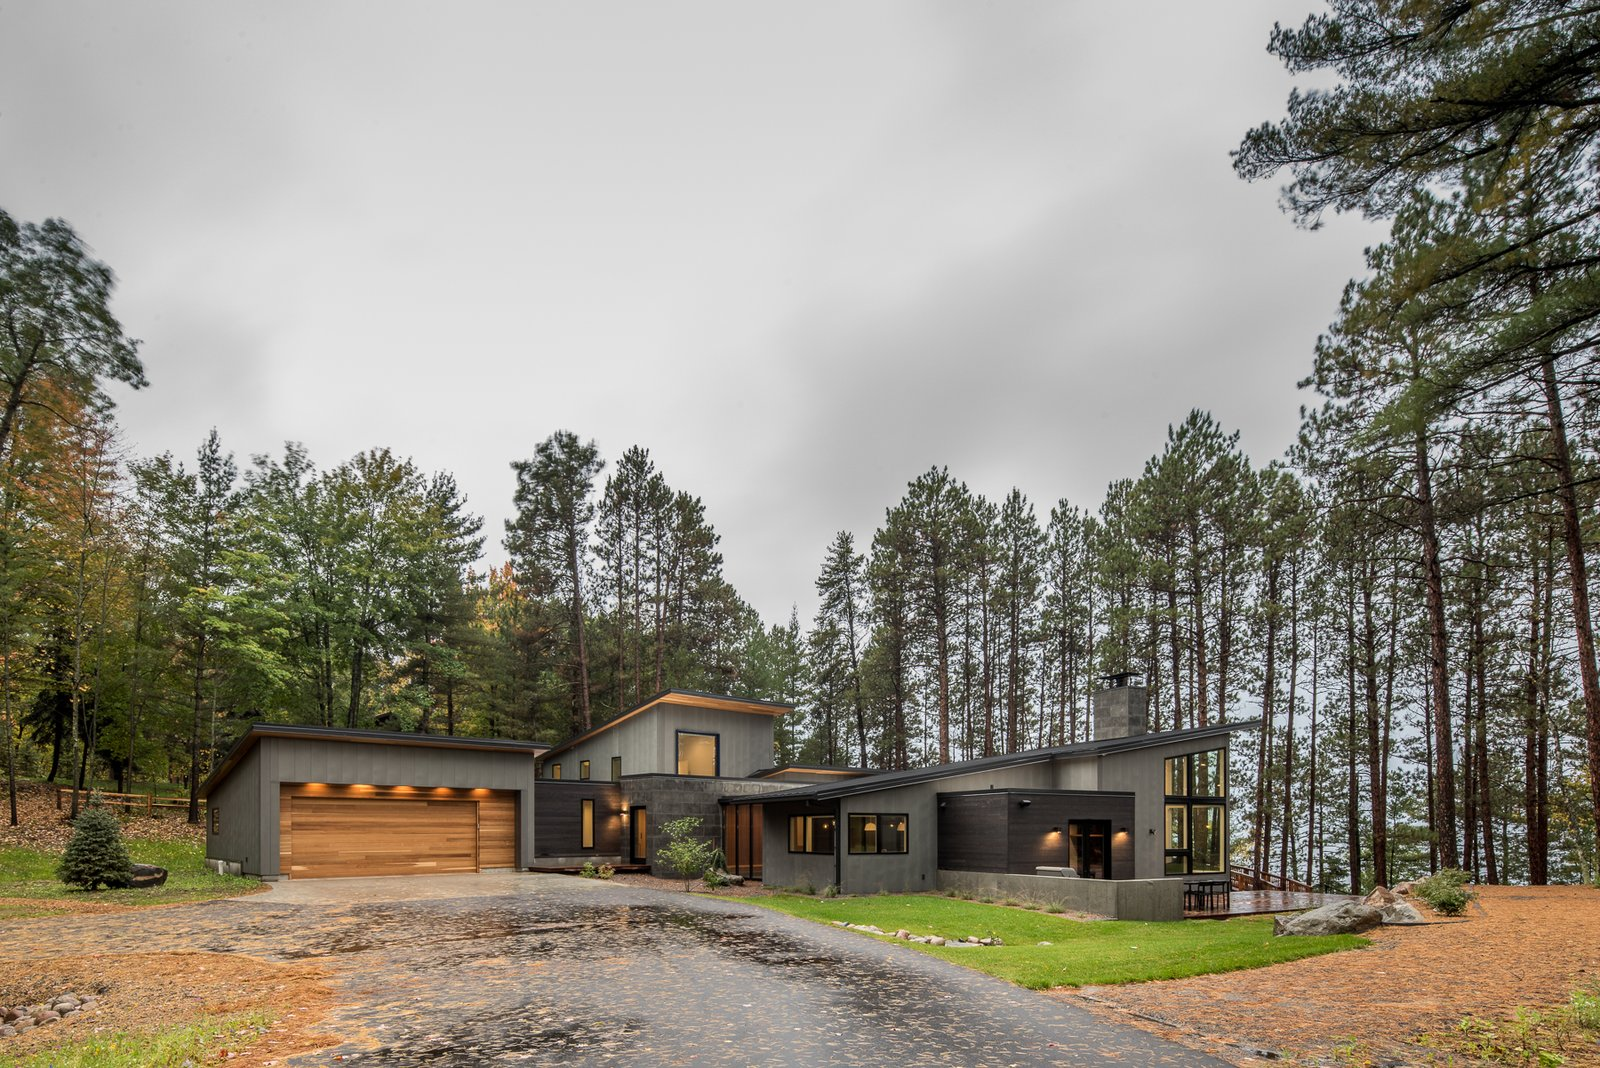 Exterior, House Building Type, Metal Roof Material, Metal Siding Material, Stone Siding Material, Wood Siding Material, Cabin Building Type, Flat RoofLine, and Shed RoofLine  Northern Lake Home by Strand Design